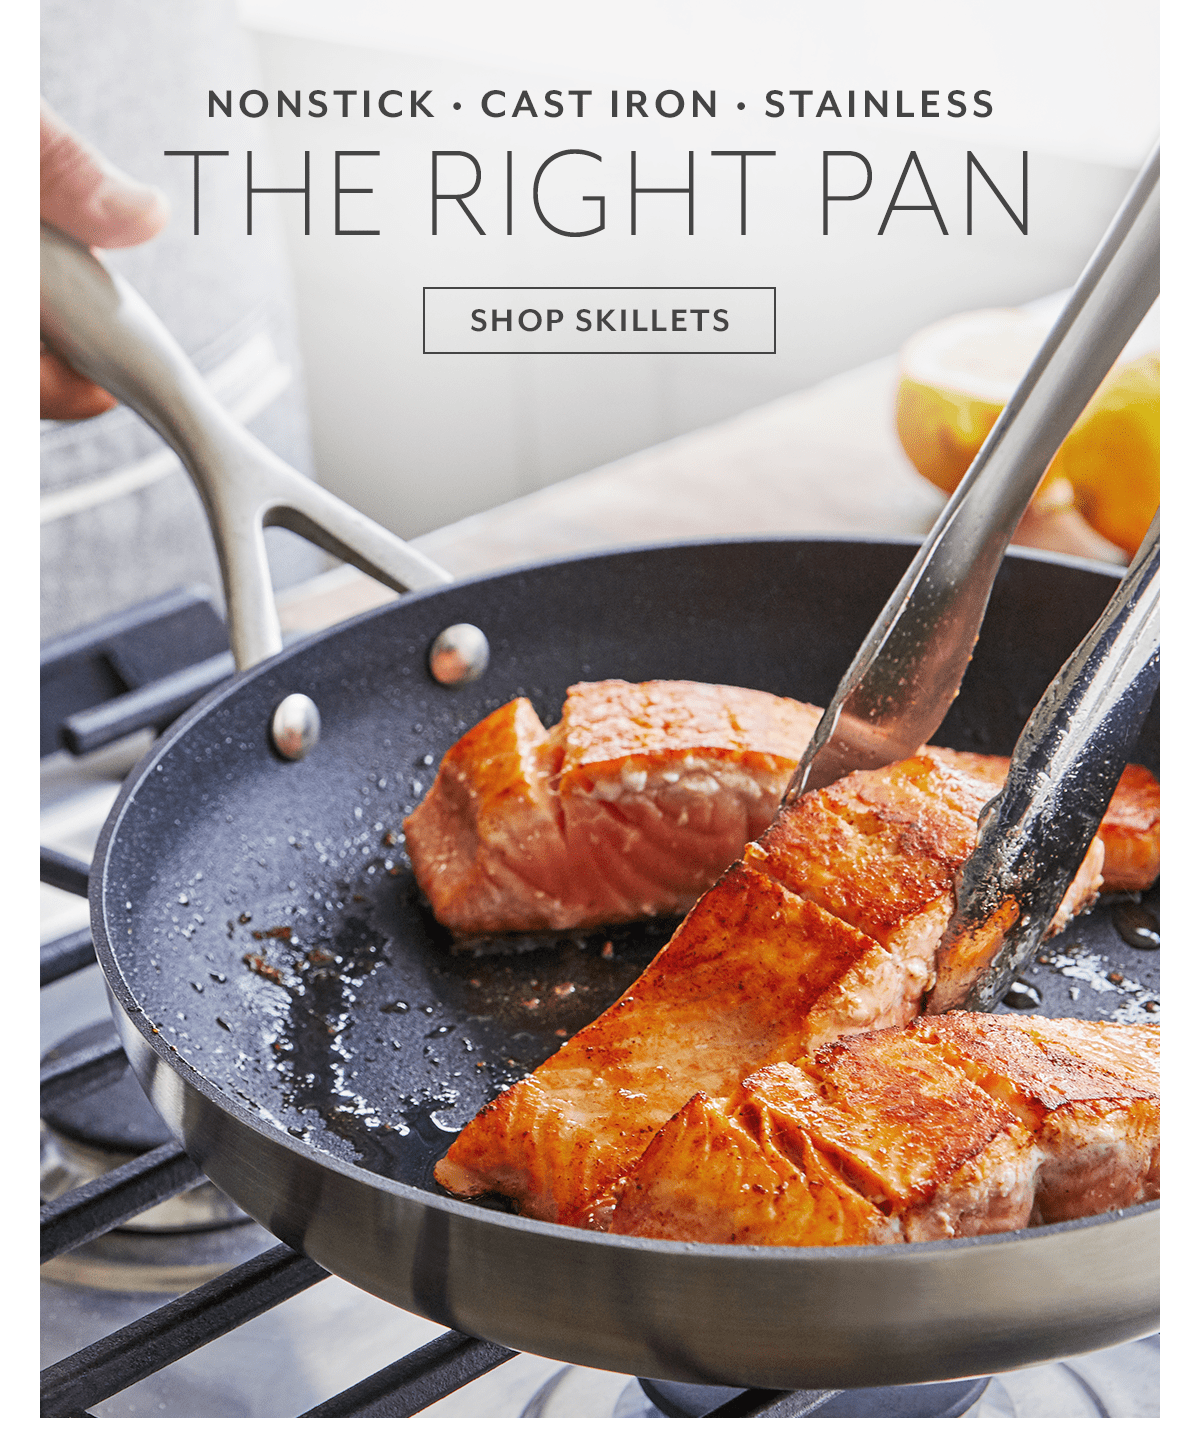 The Right Pan